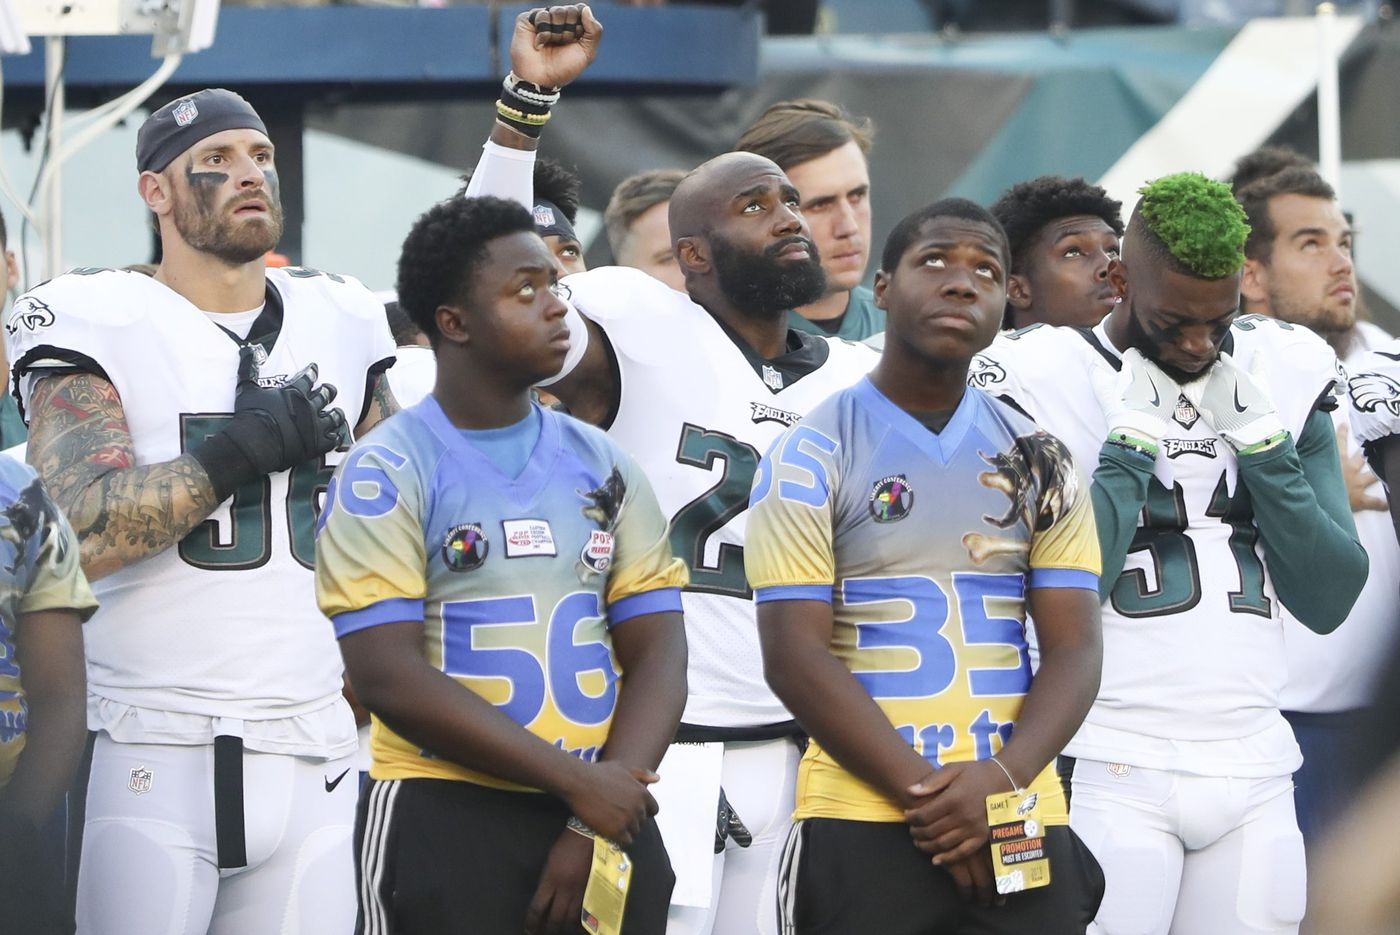 Malcolm Jenkins raises fist in protest during national anthem in response to 'how the offseason went'